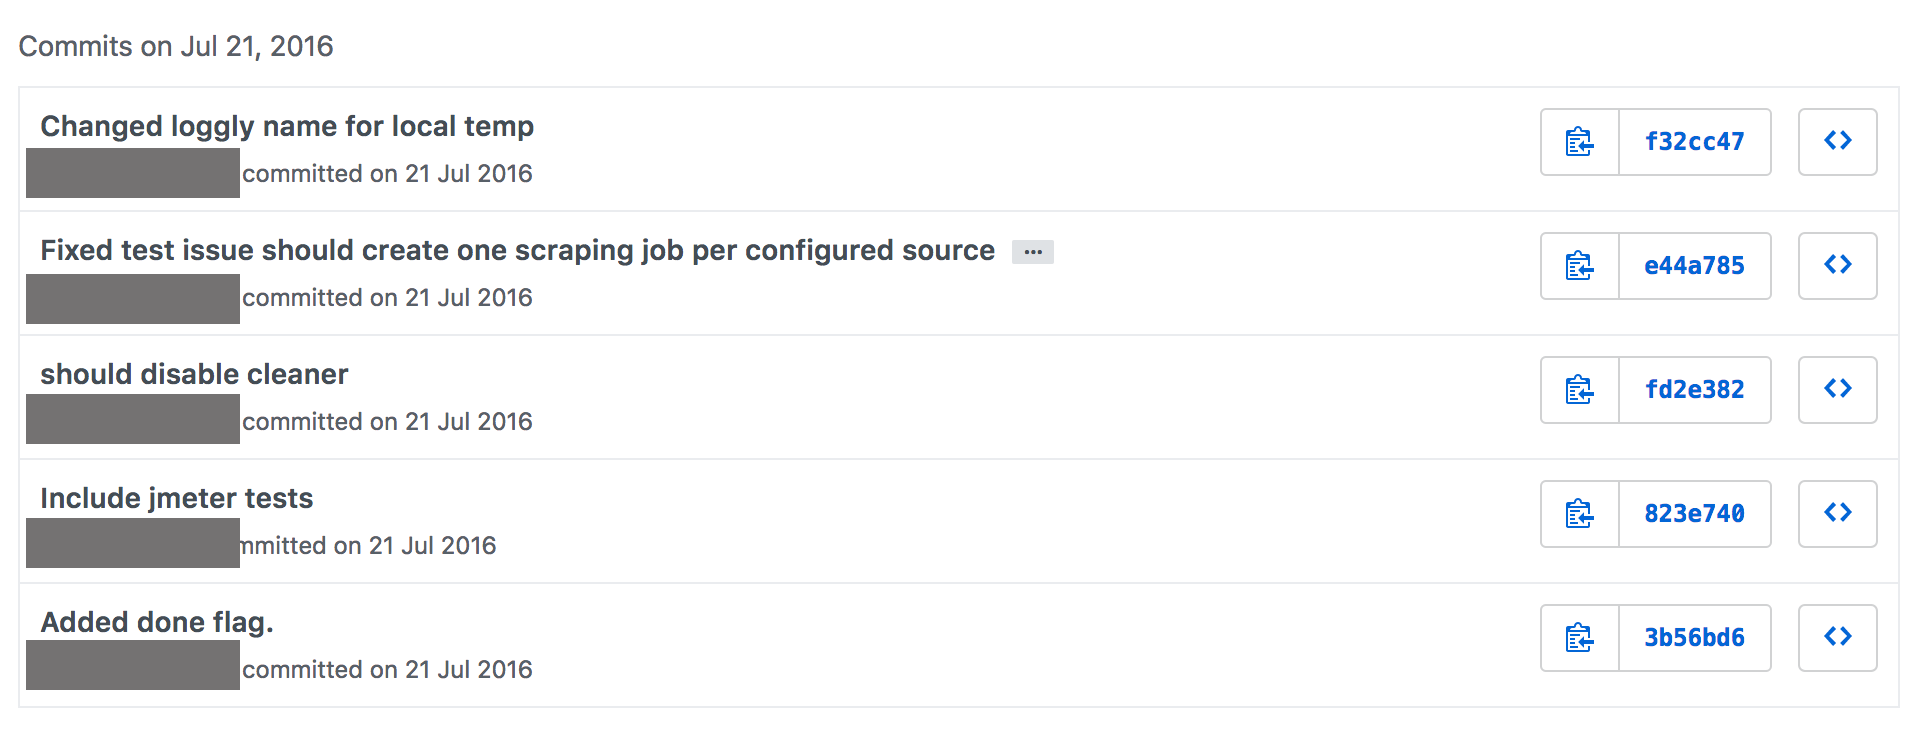 The subtle discipline of daily commits and value delivery